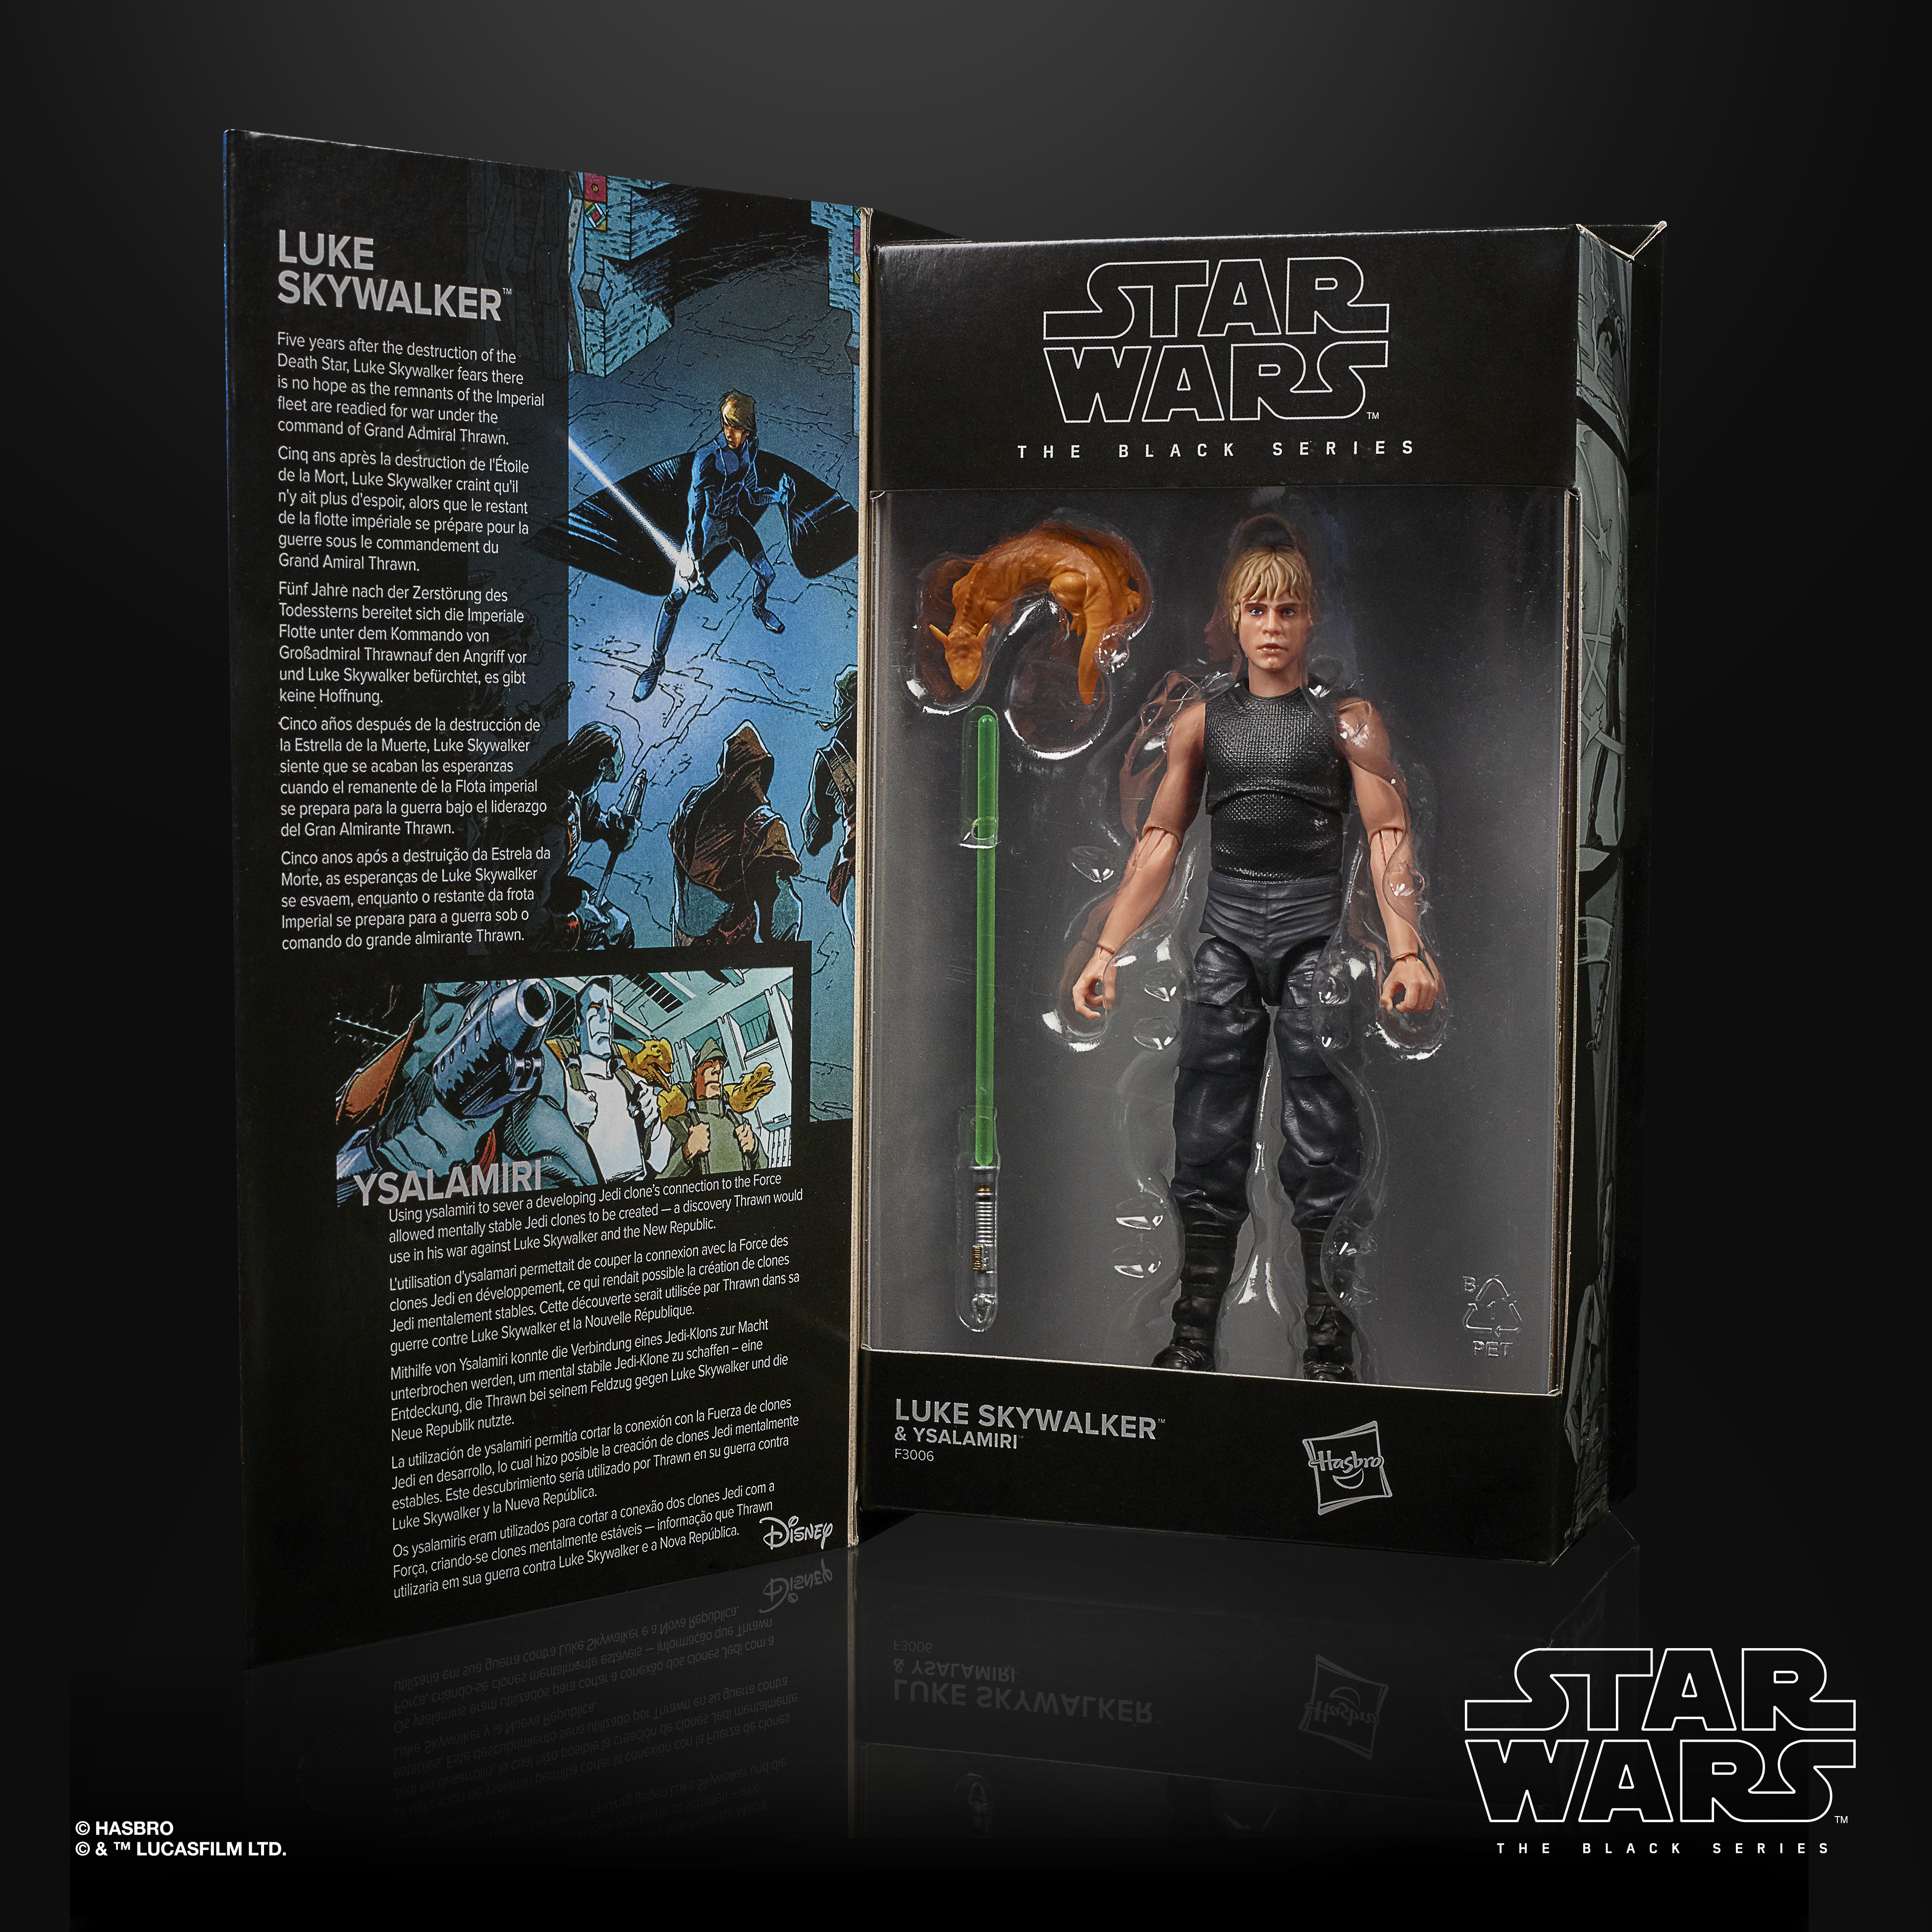 Star Wars The Black Series Luke Skywalker & Ysalamiri LUCASFILM 50TH ANNIVERSARY FIGURE F30065L00 5010993872817